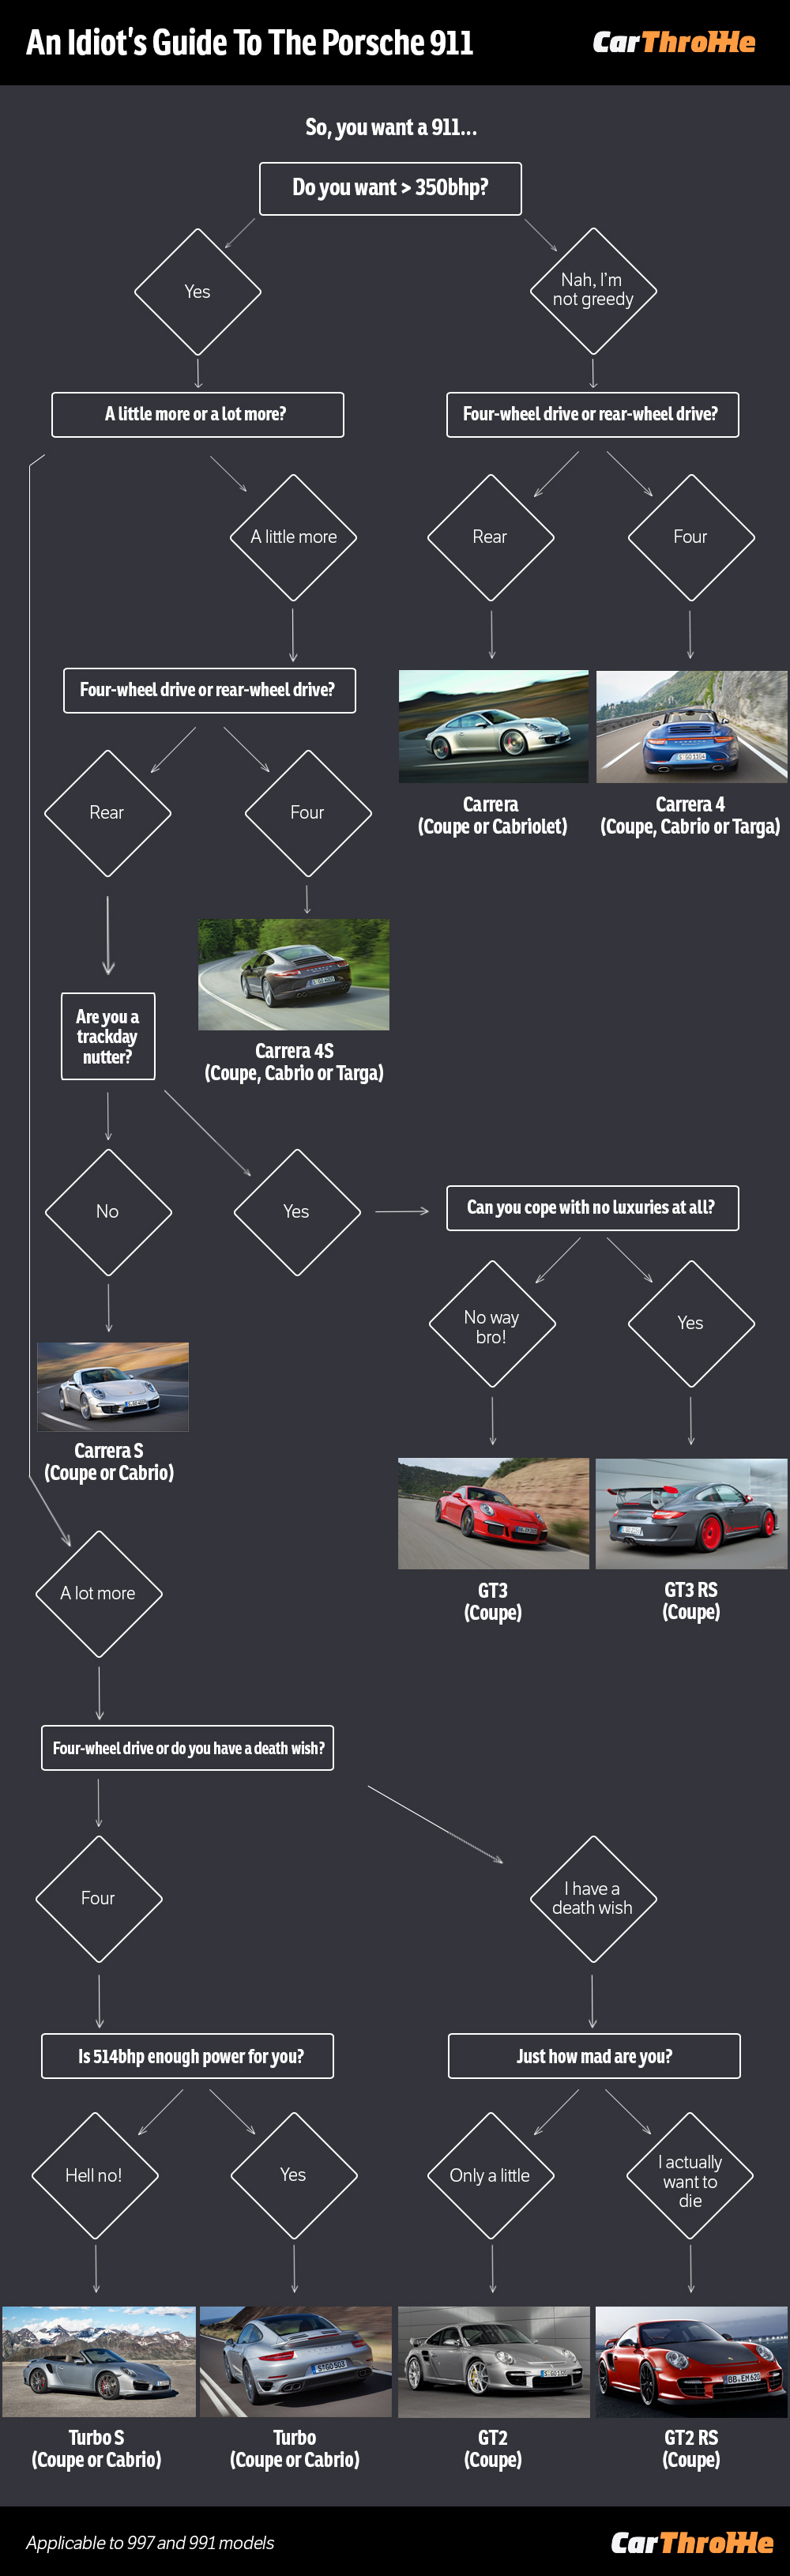 An Idiots Guide To Understanding The Porsche 911 Range Engine Diagram 1990 Note Chart Applies 991 And 997 Generations Gt3 Rs Isnt Yet Available In Current Gt2 Are So Far Unconfirmed